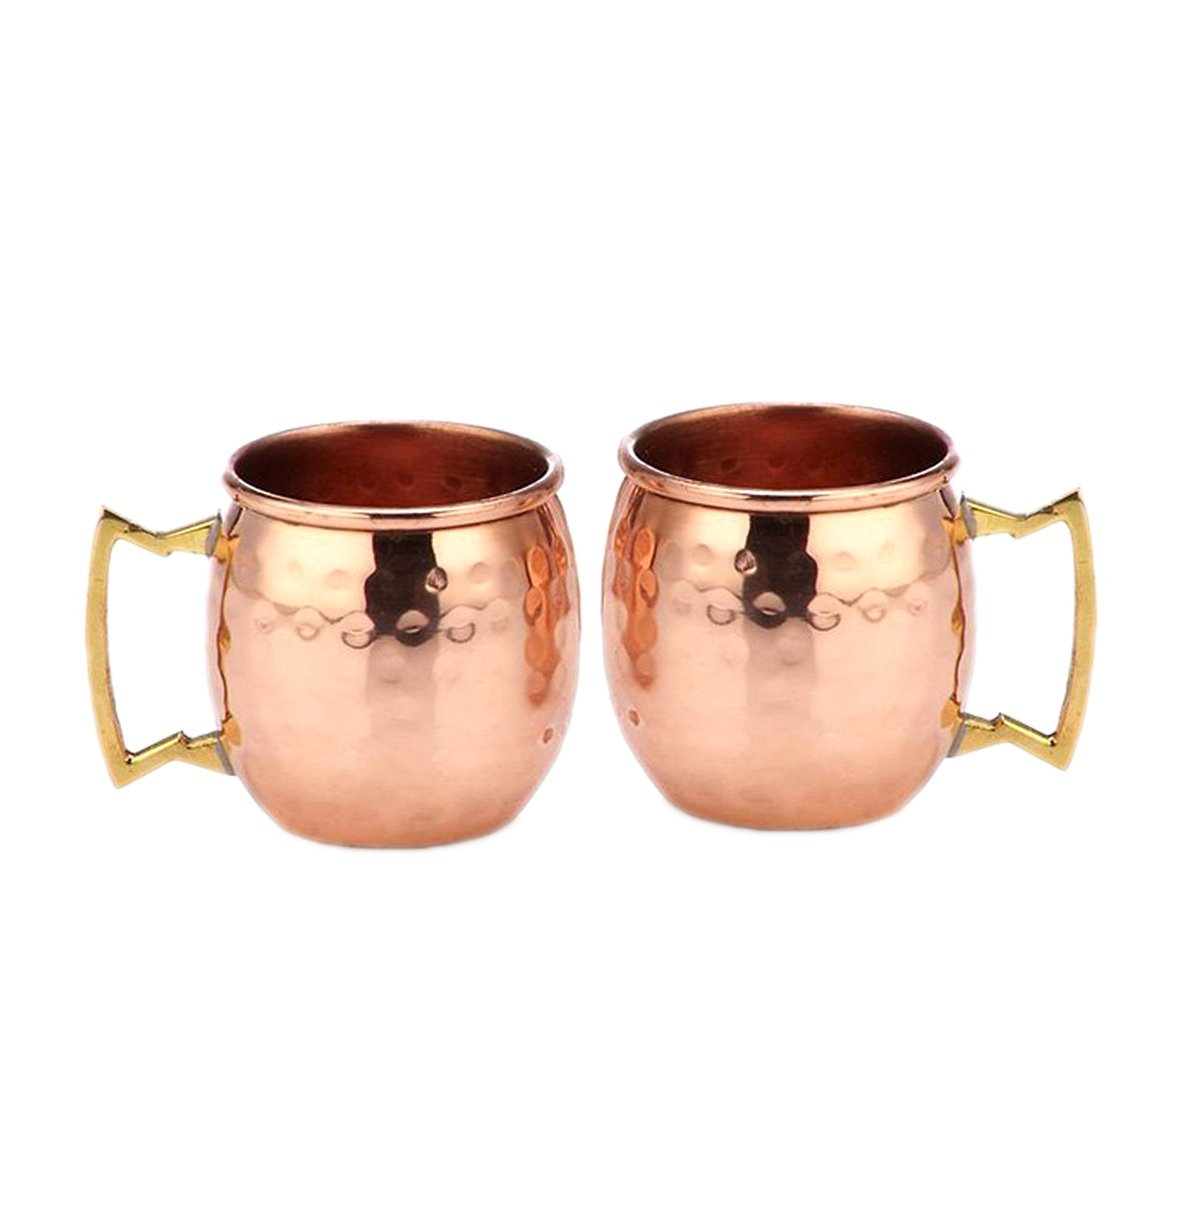 Copper Mini Moscow Mule Shot Mug Authentic and Solid Copper Moscow Mule mugs cups glasses (Hammered, 2-Ounce)